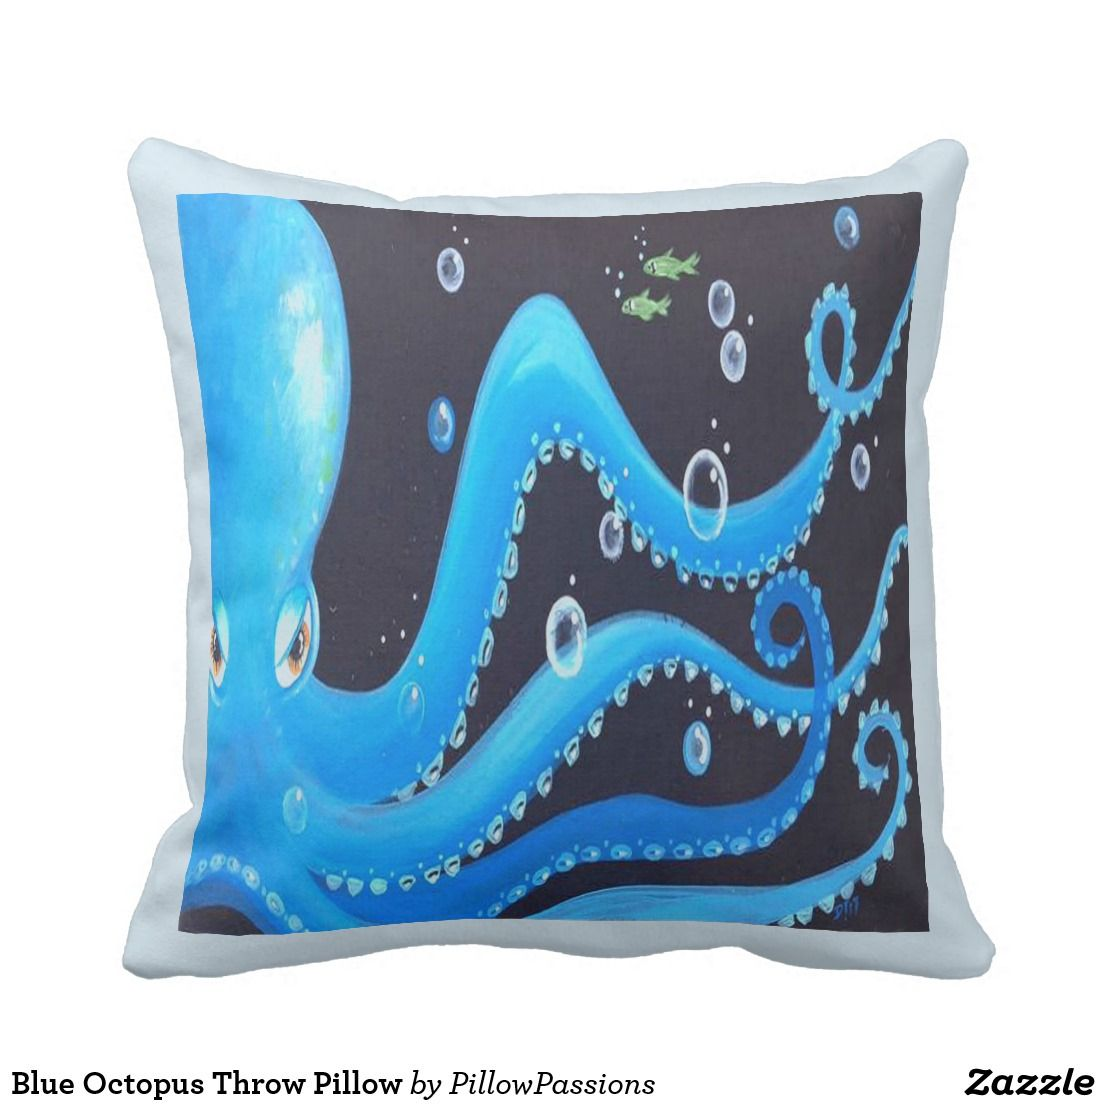 covers zef unique fall designs pillow pillows jam barn creative pillowcase sham pottery